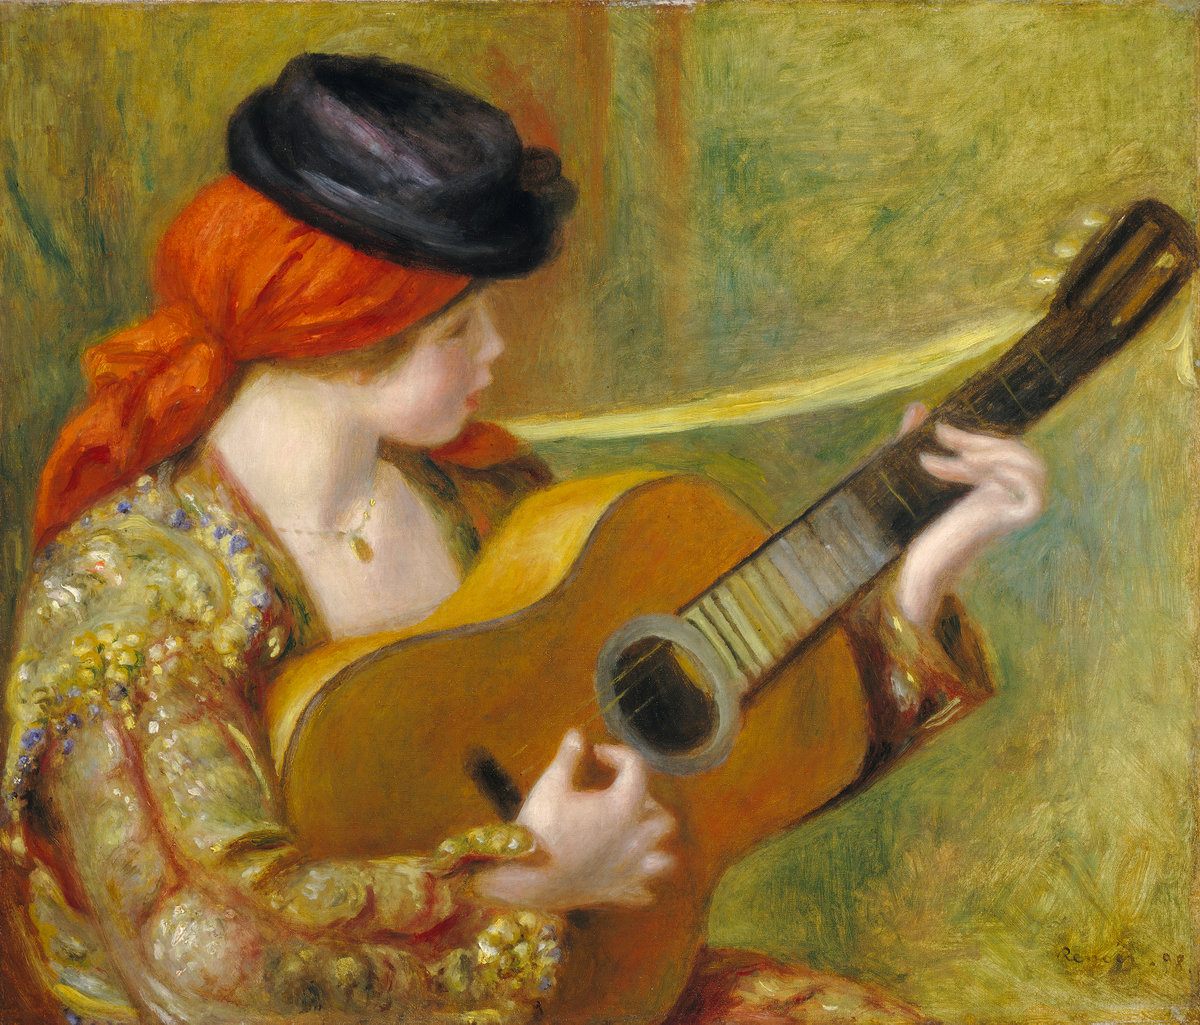 Pierre-Auguste Renoir, Young Spanish Woman with a Guitar, 1898